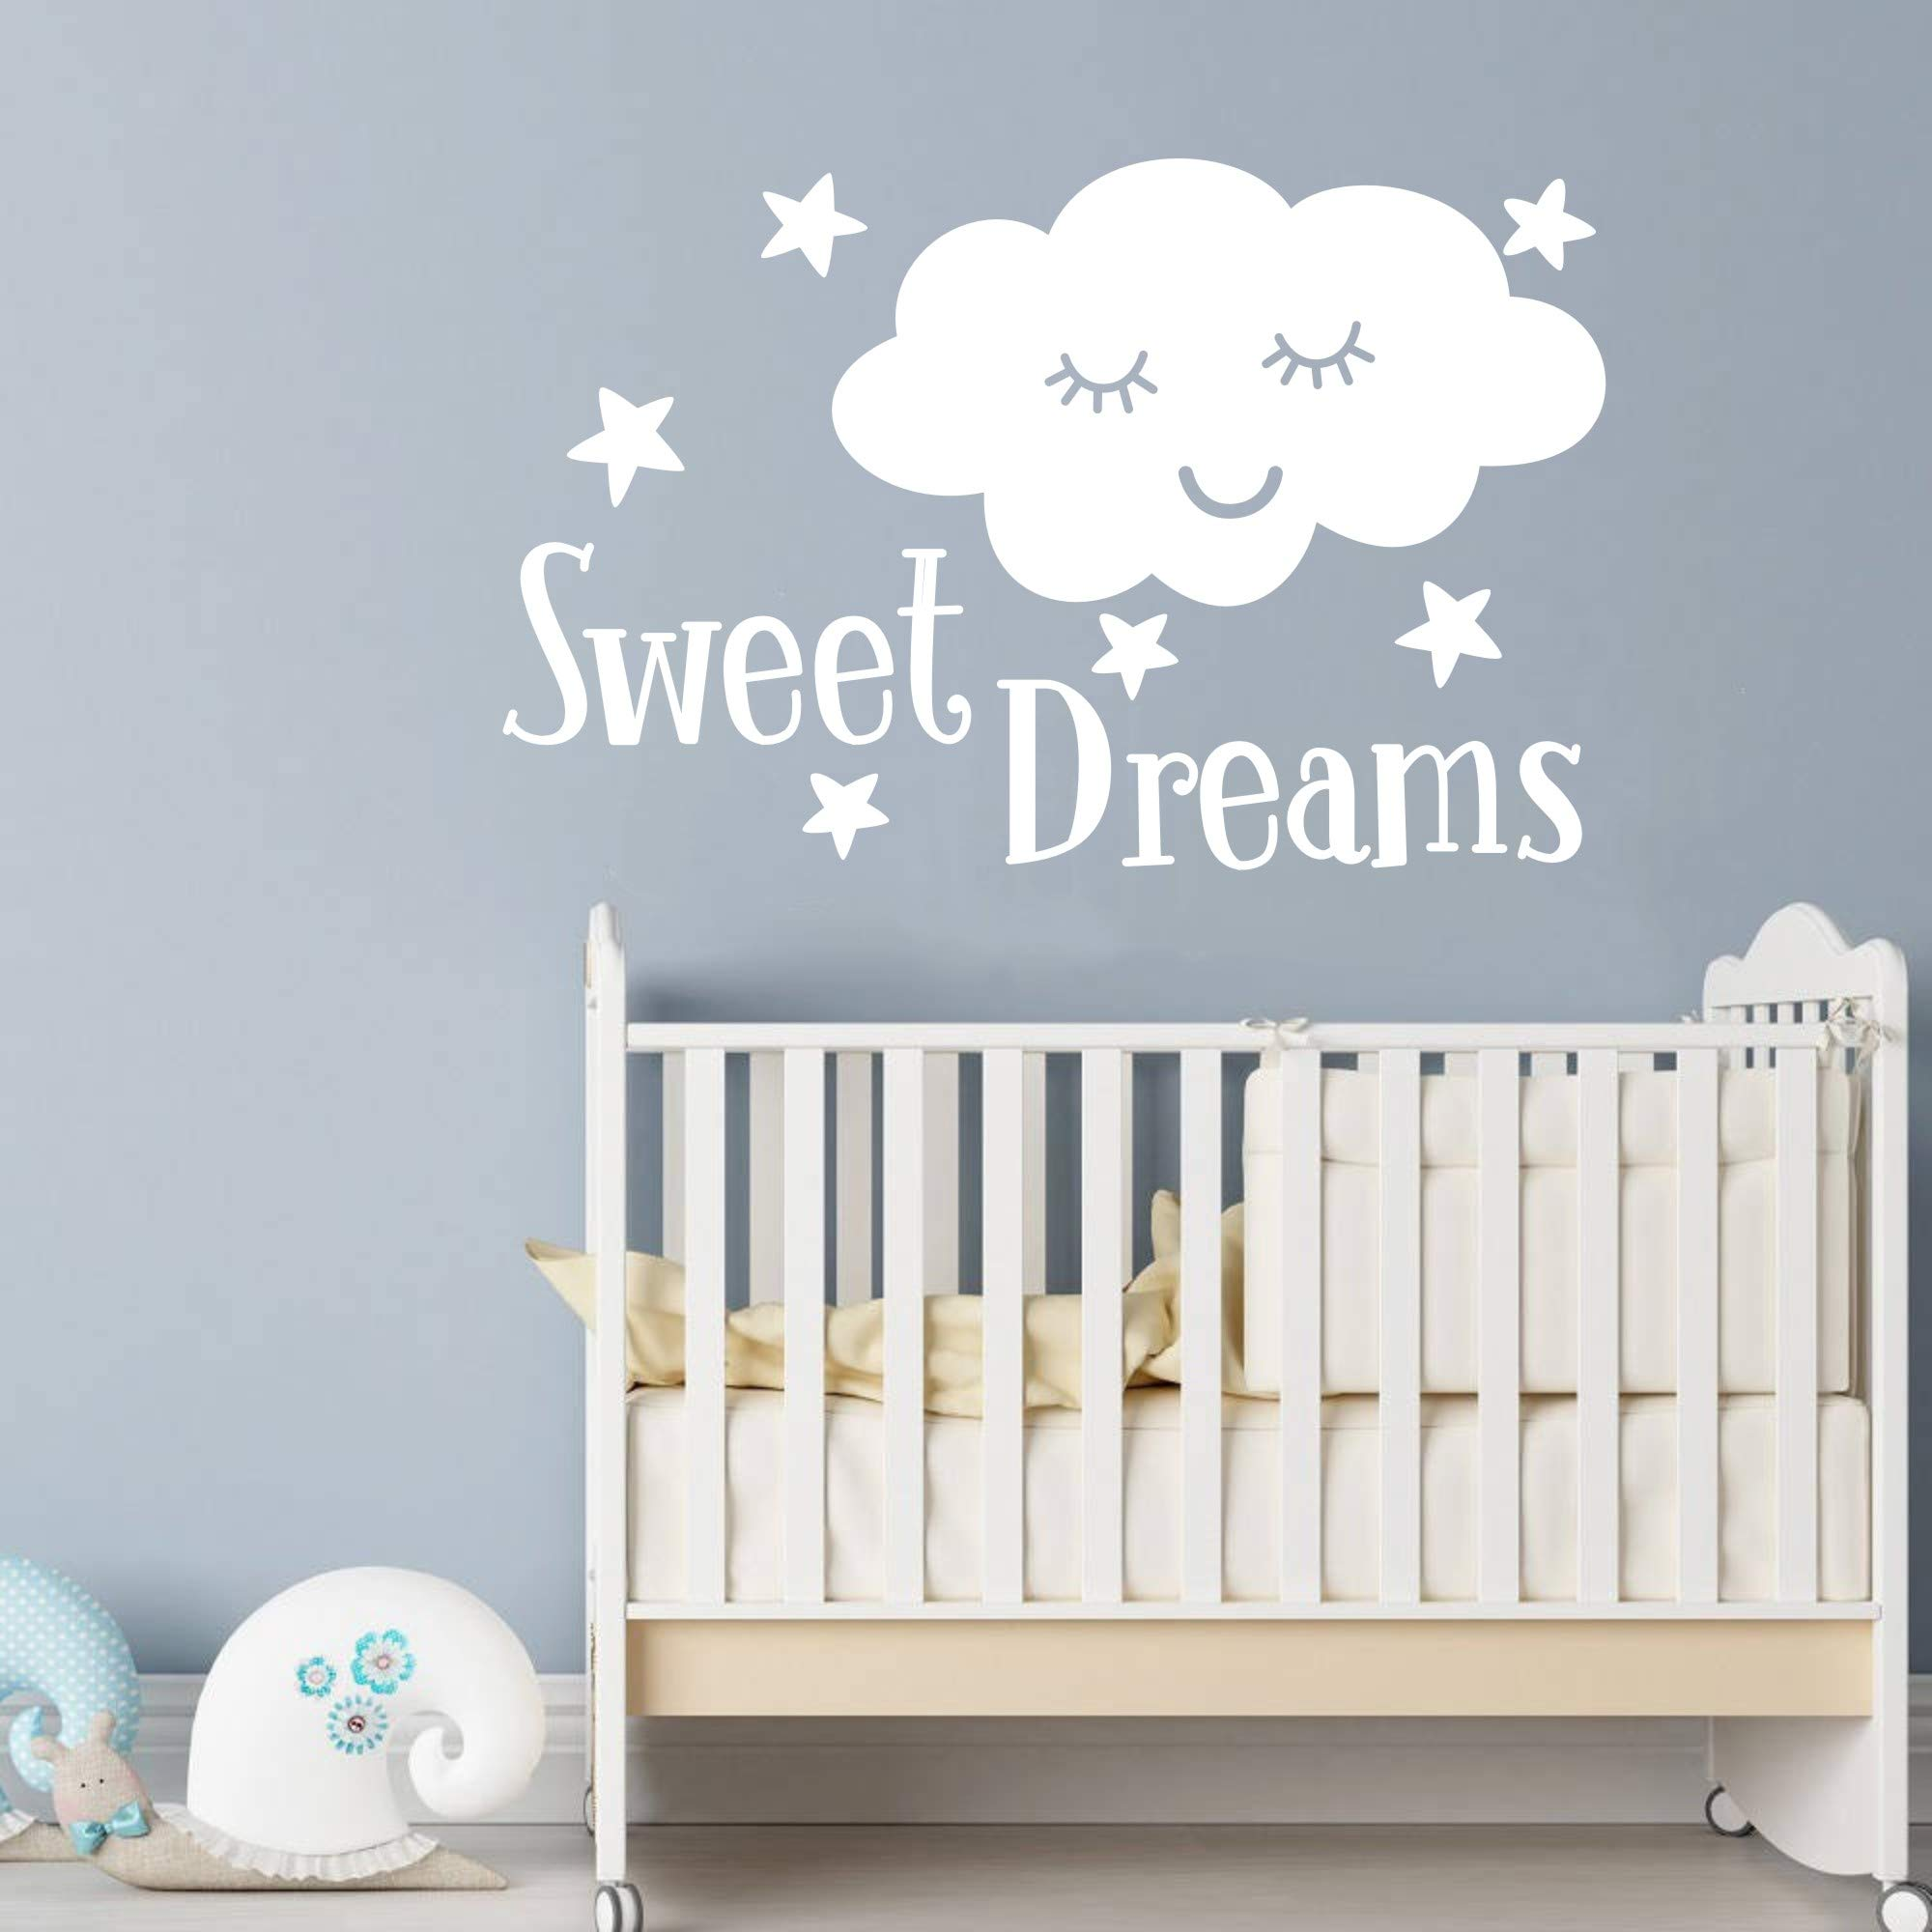 JUXUOXIN Sweet Dreams Smile Cloud Stars Wall Decal Art Vinyl Sticker Quote Lettering Decoration Removable Baby Girl Boy Kids Nursery Room Decor YMX32 (White, 88X57CM)